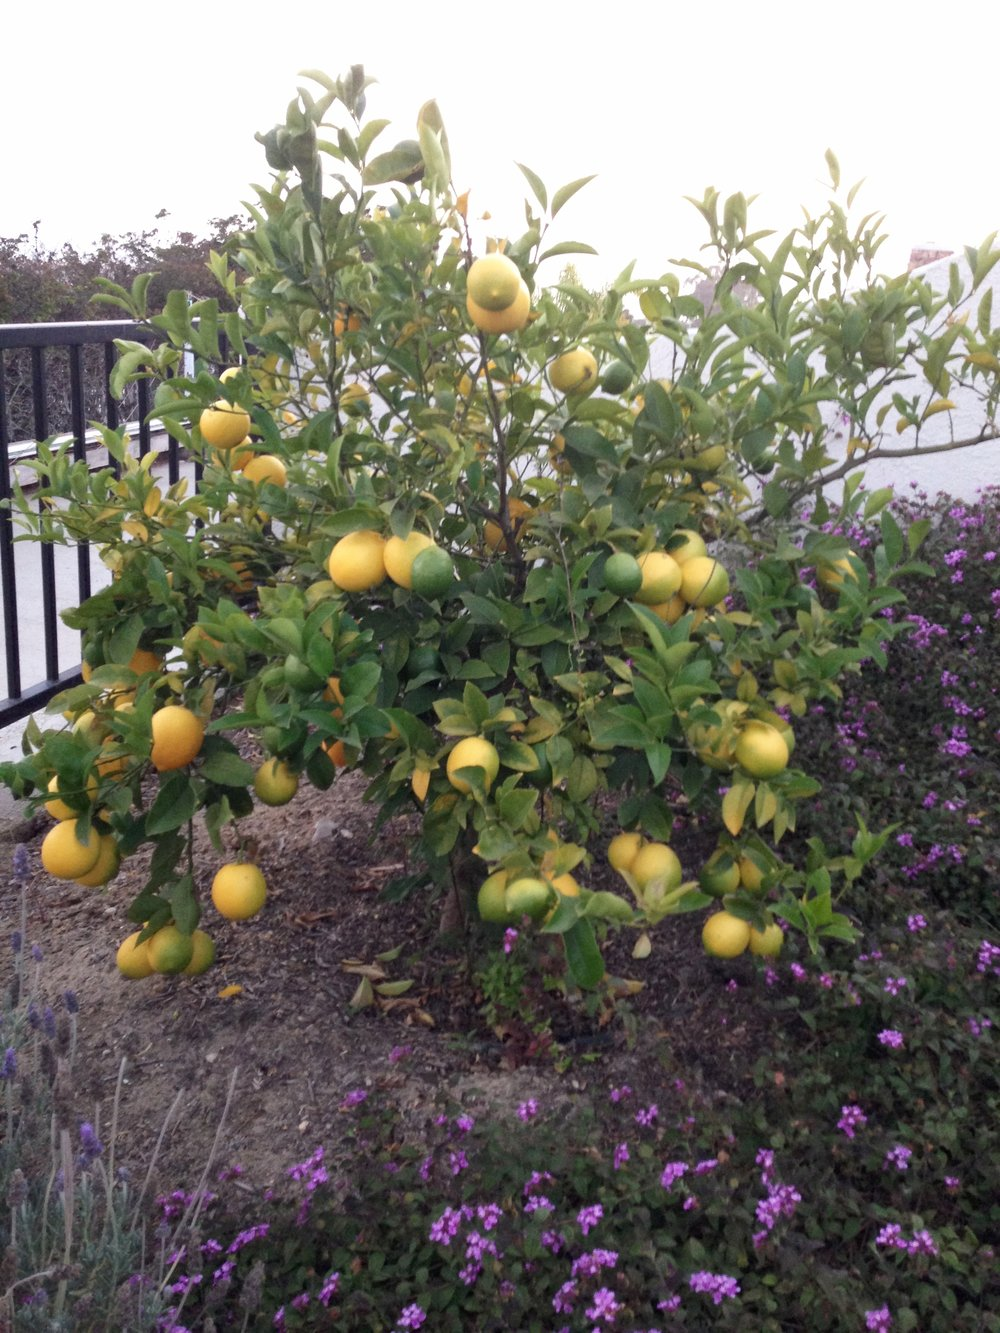 Image #12 - Ventura house - Lemon tree.JPG